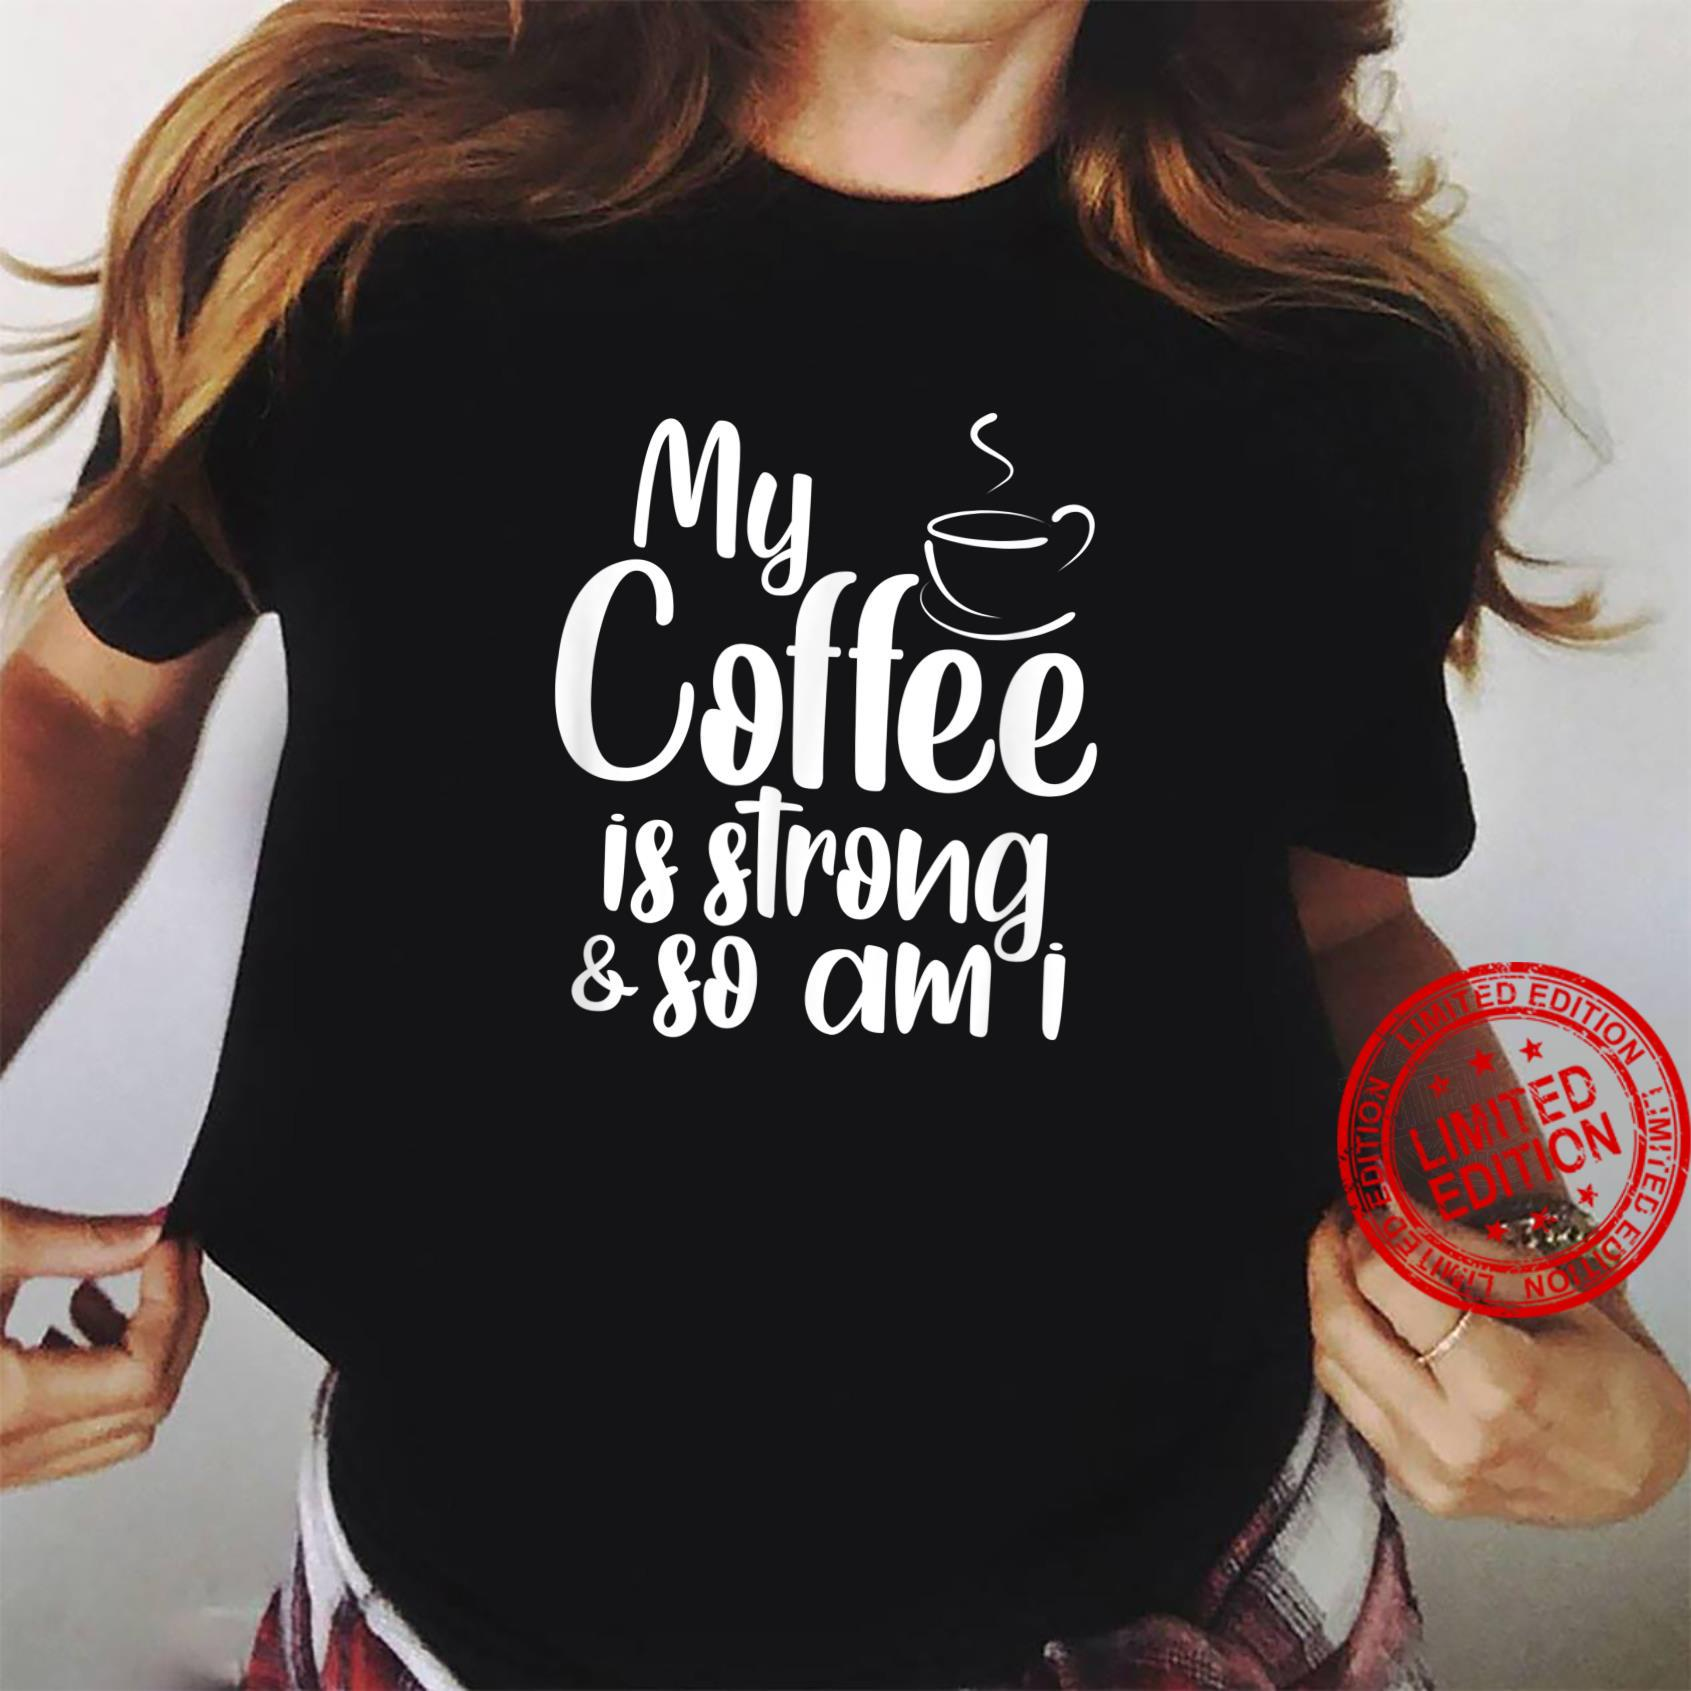 My Coffee is strong and so am I Shirt